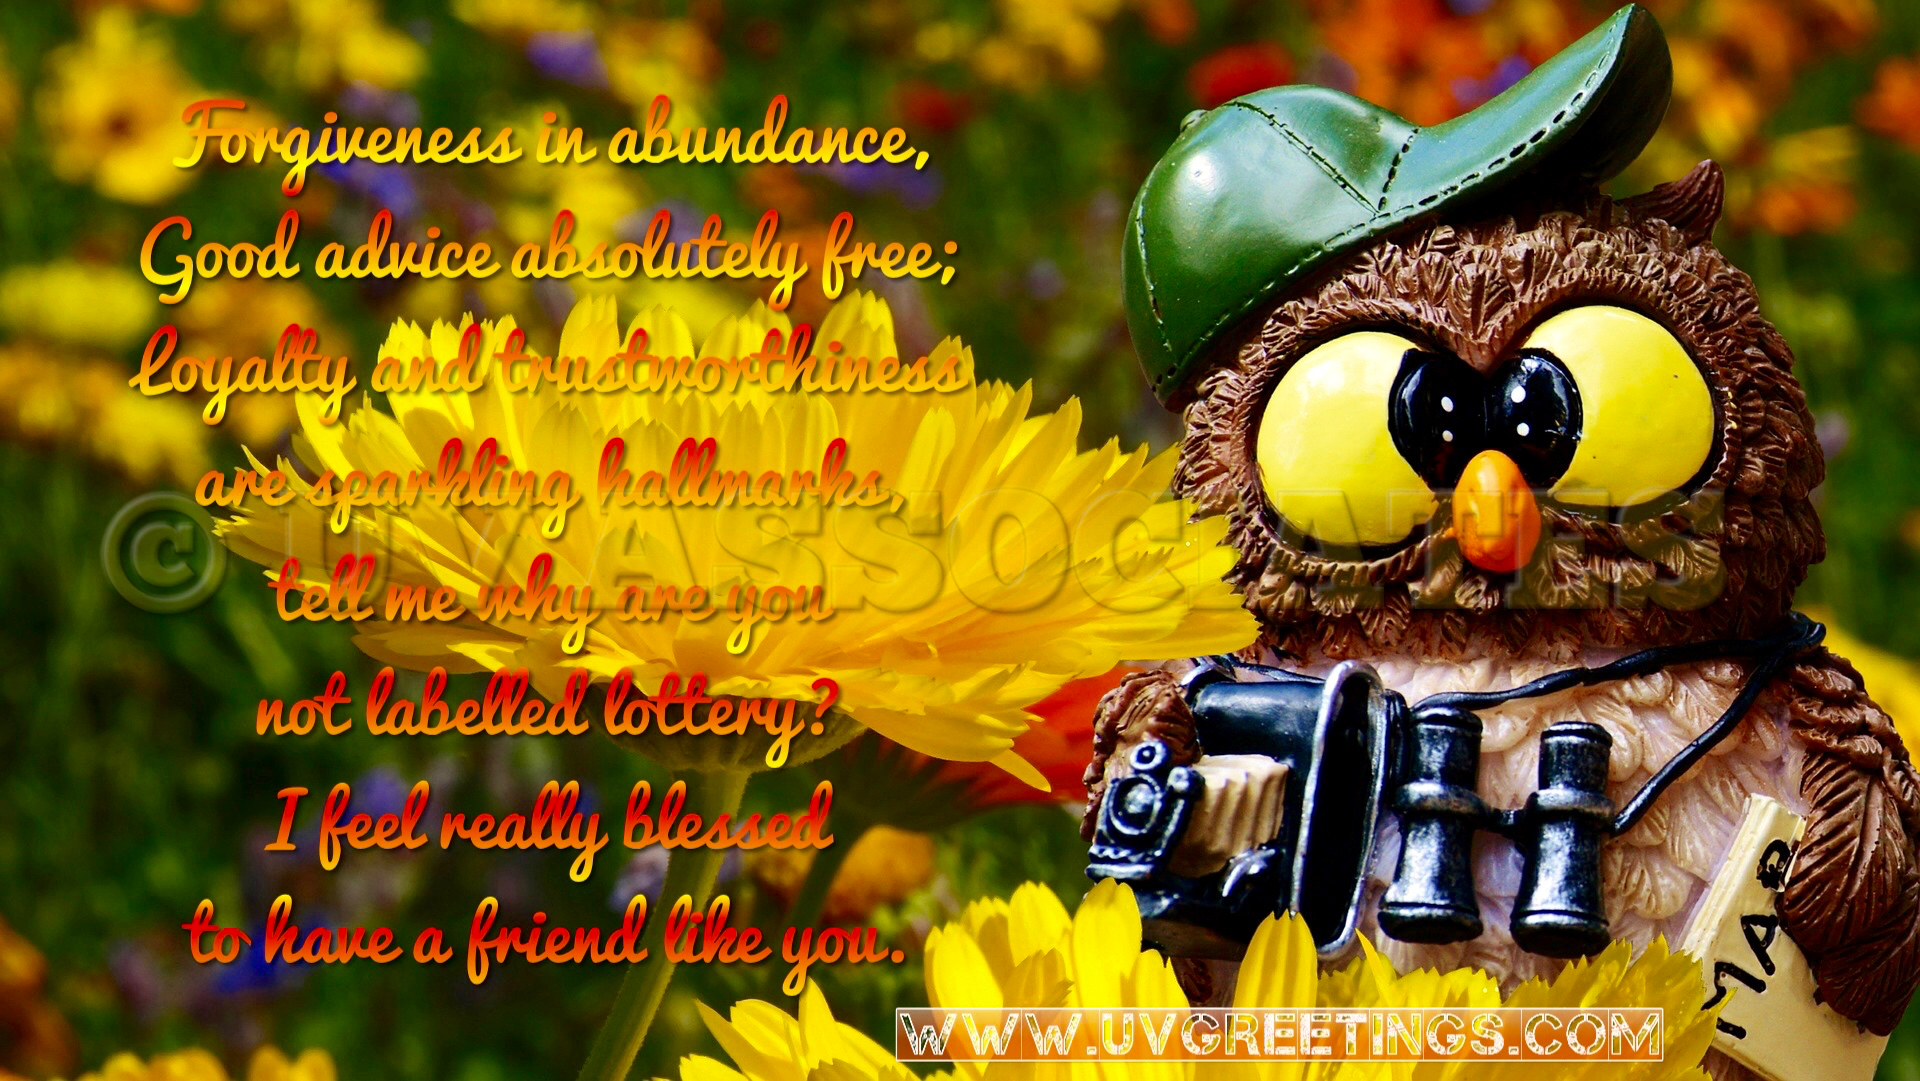 Thank You Friend - eCard bright yellow flowers, Owl